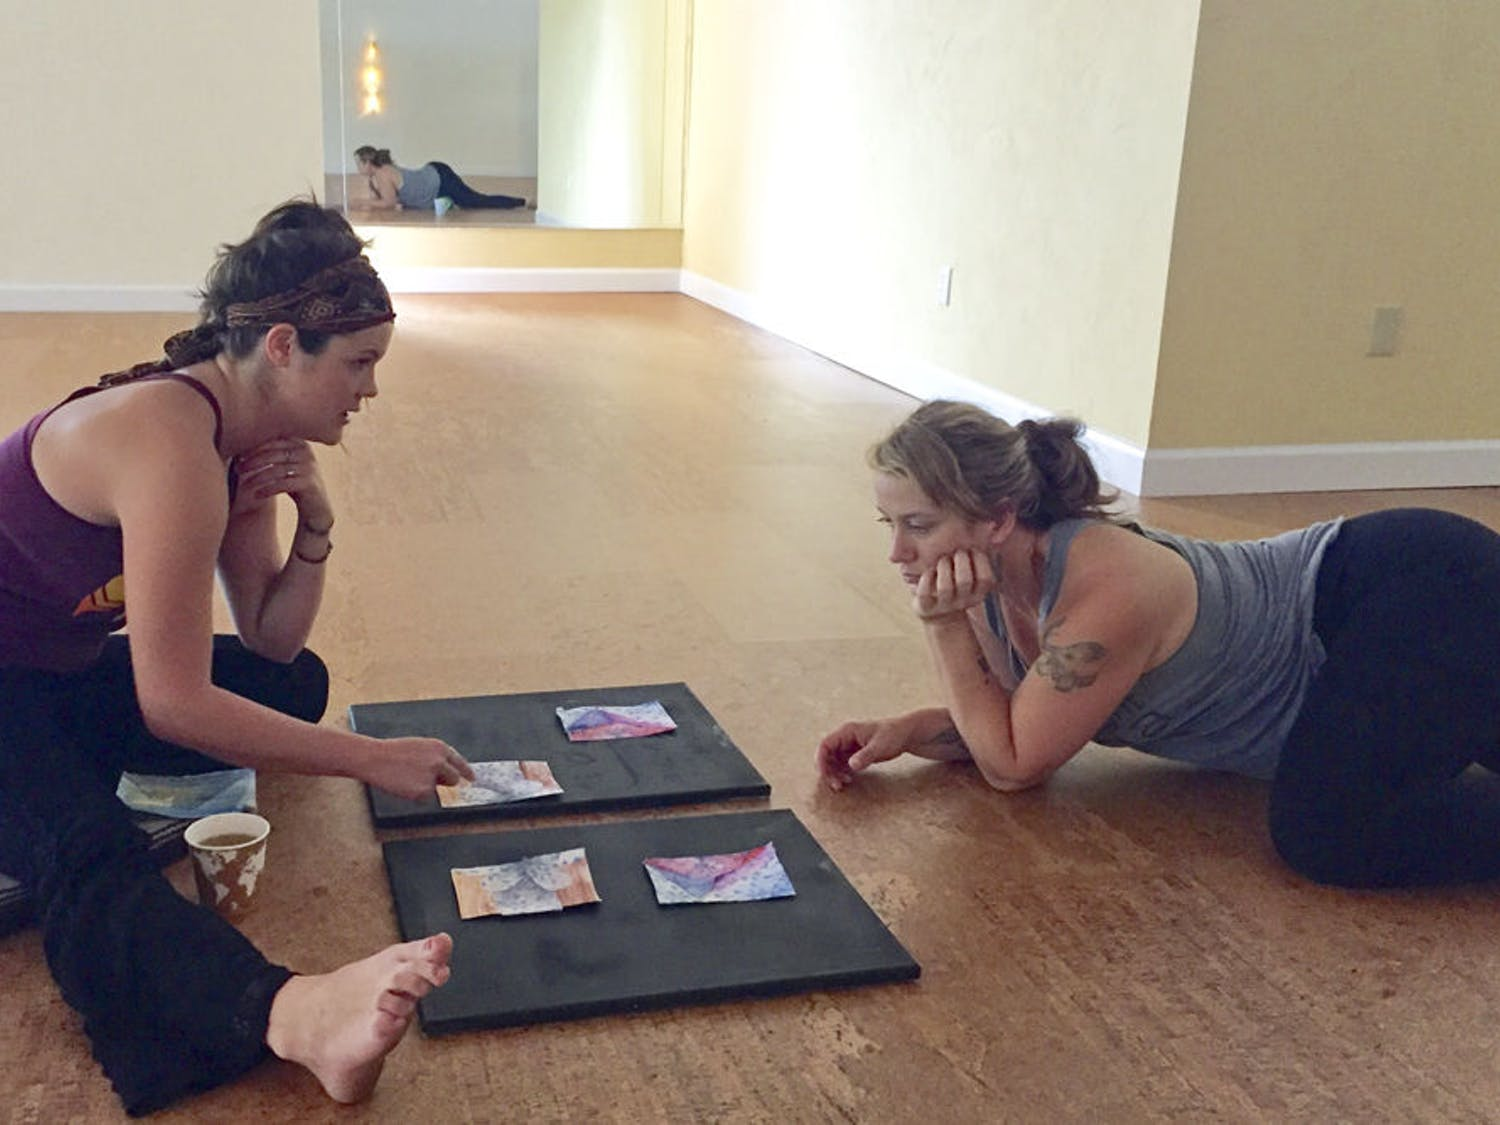 Jenna Horner, left, shows samples of the art she is making for her yoga instructor, Samantha Jones. Horner is a Gainesville-based multimedia artist who incorporates people's belongings into her works.